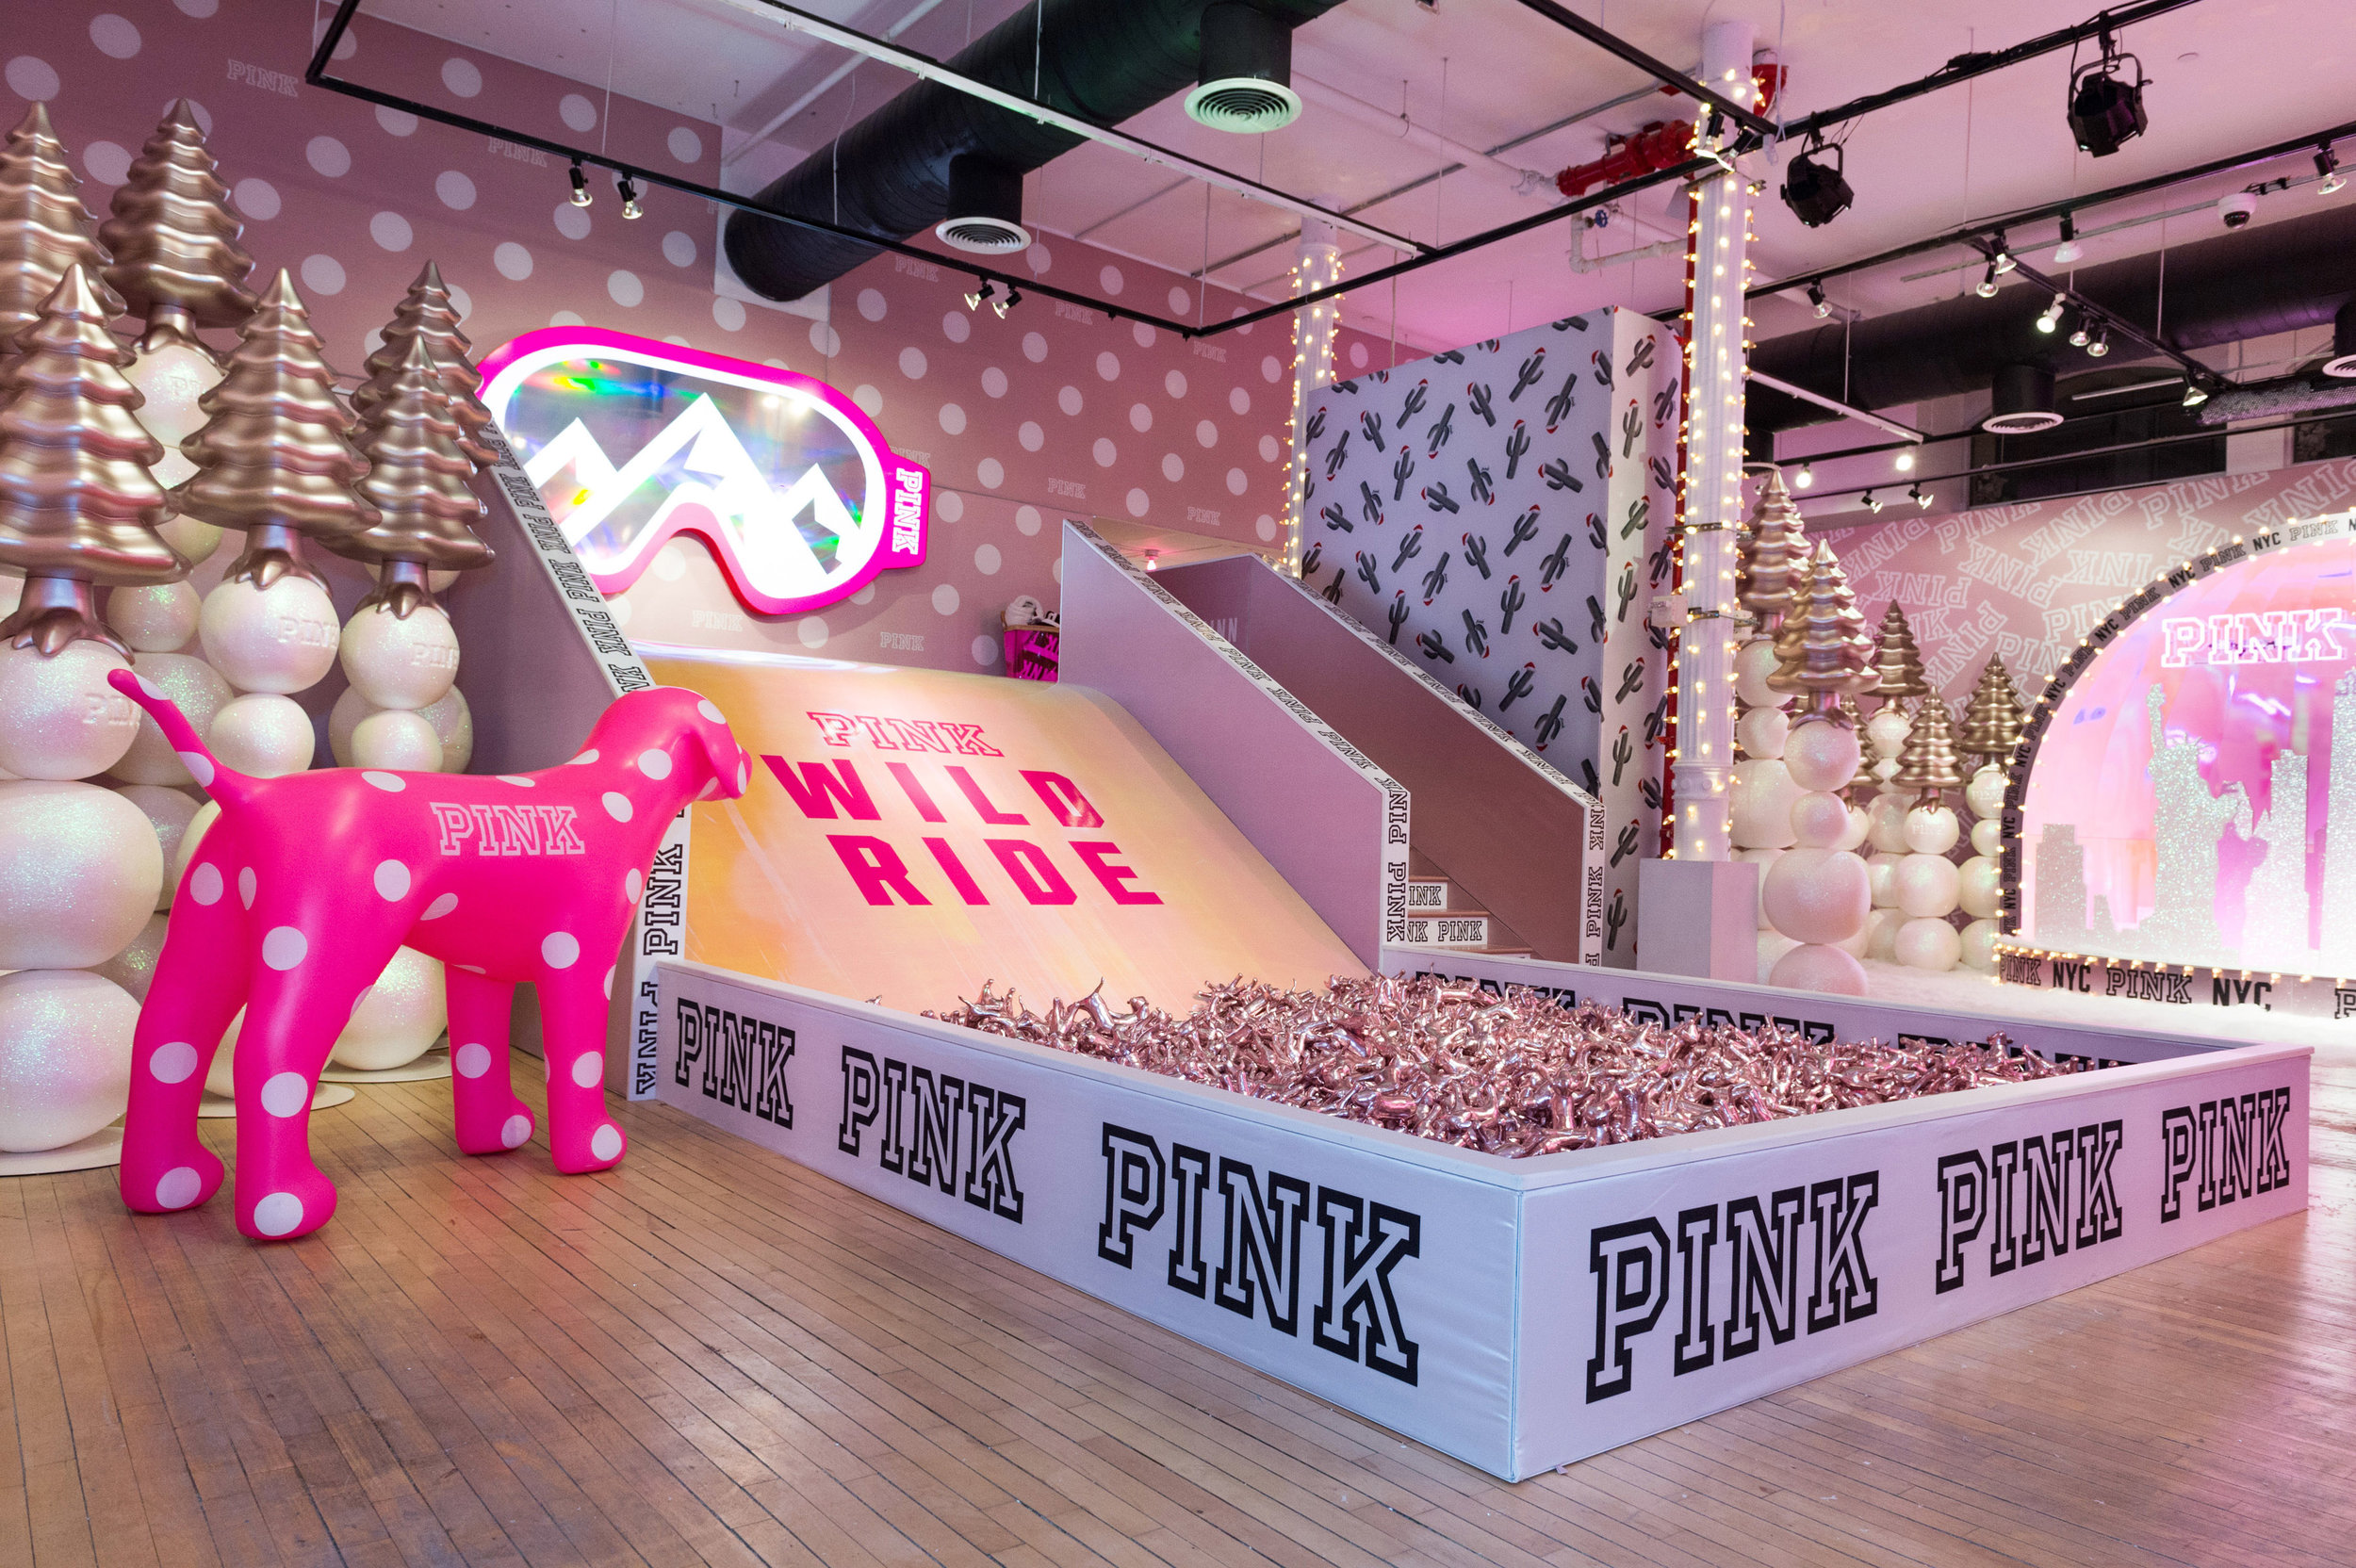 PINK Snowed Inn, experiential pop-up event